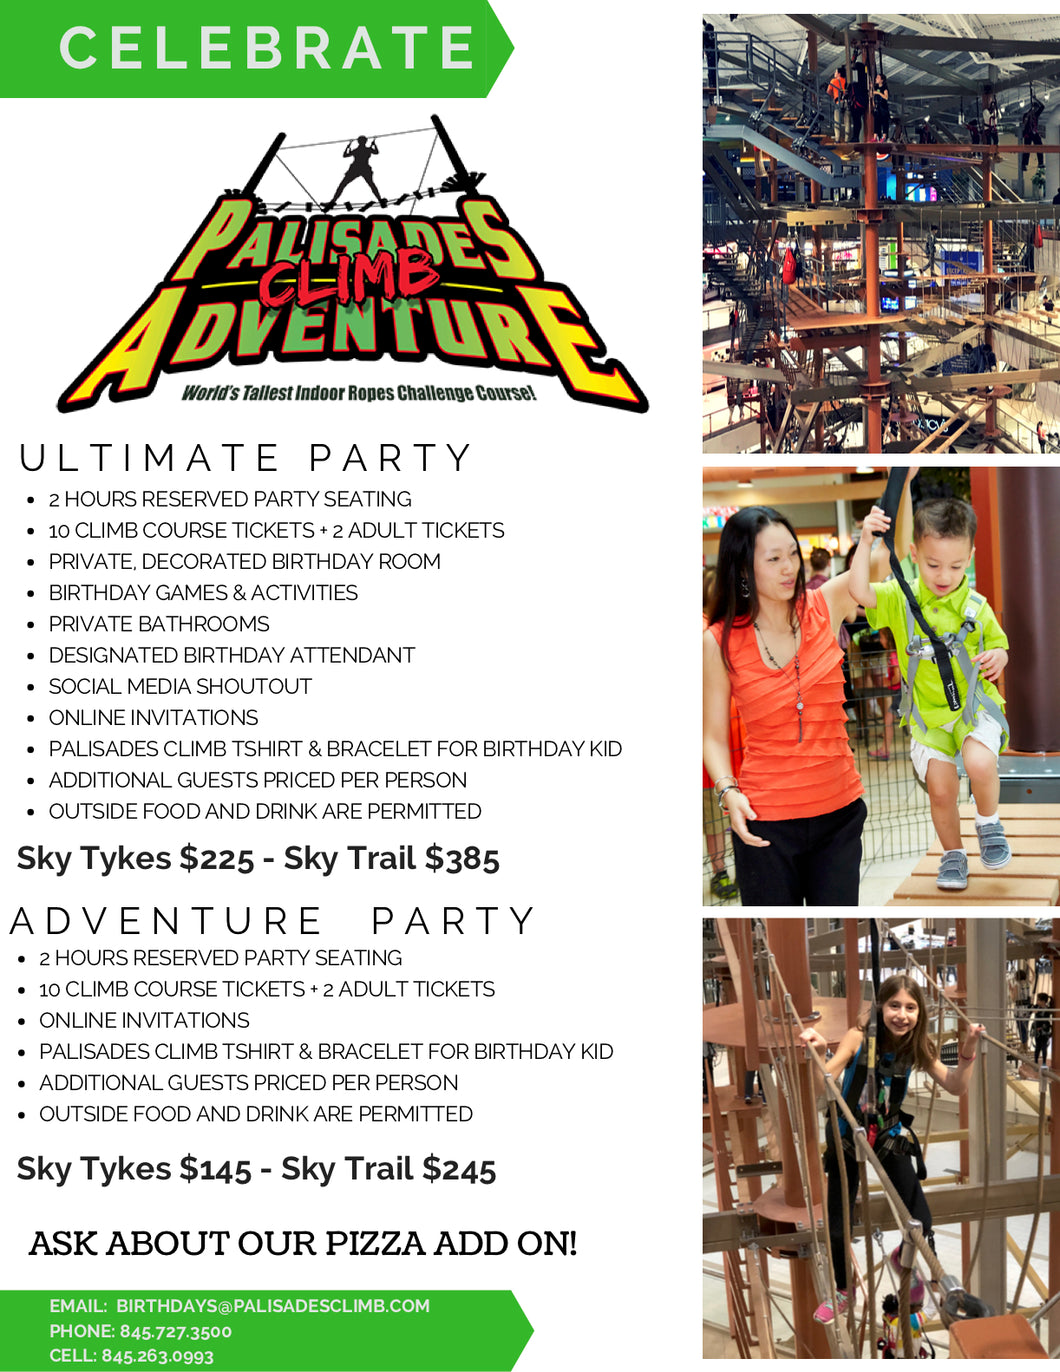 THE SKY TRAIL ADVENTURE PARTY (For Participants Over 42″ Tall)